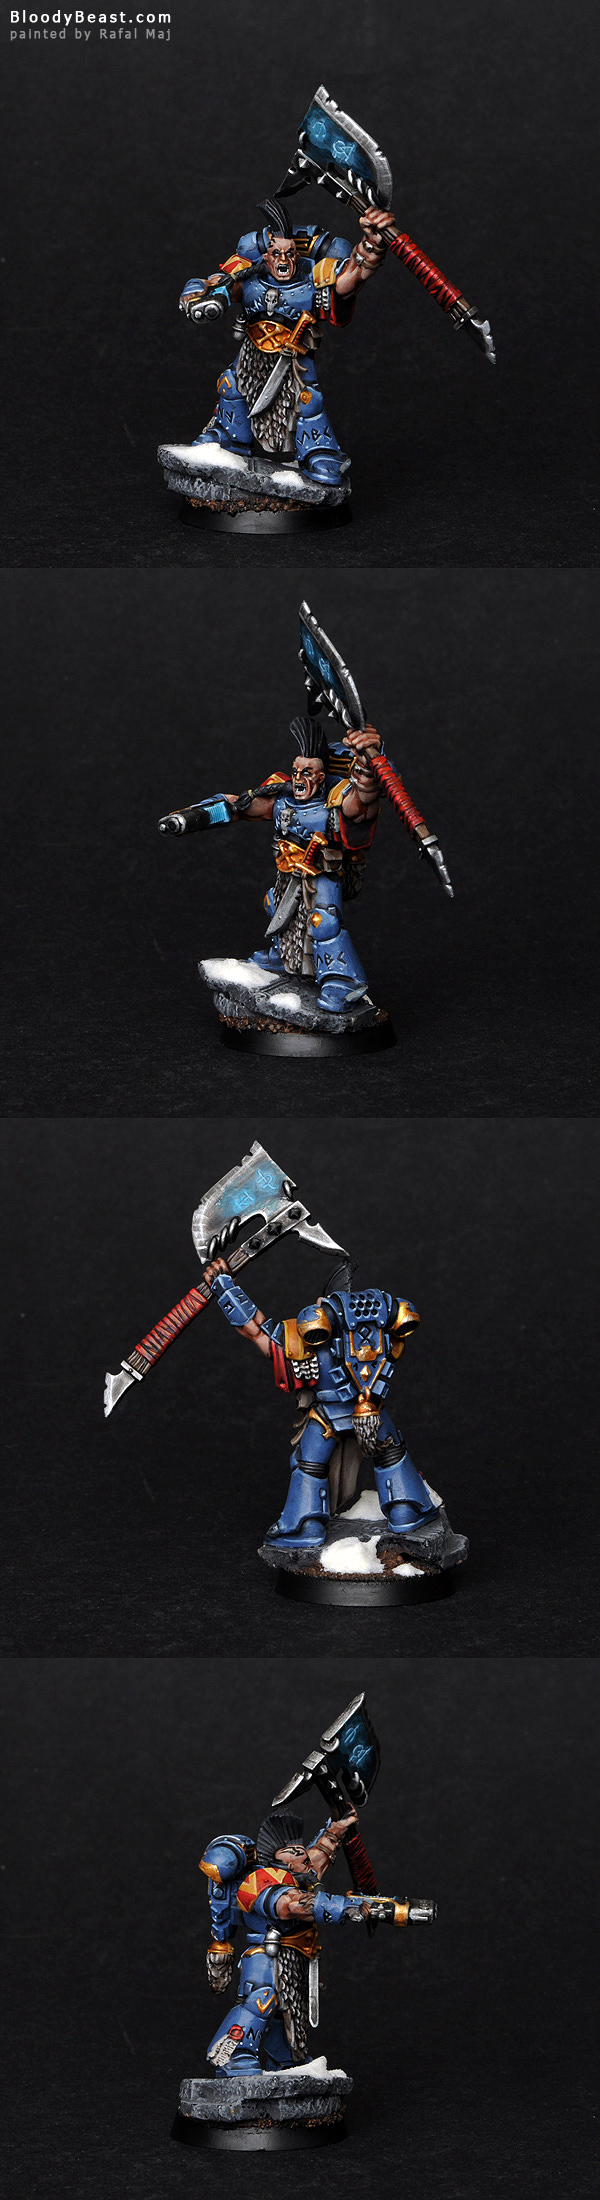 Space Wolves Rune Priest with Force Axe painted by Rafal Maj (BloodyBeast.com)